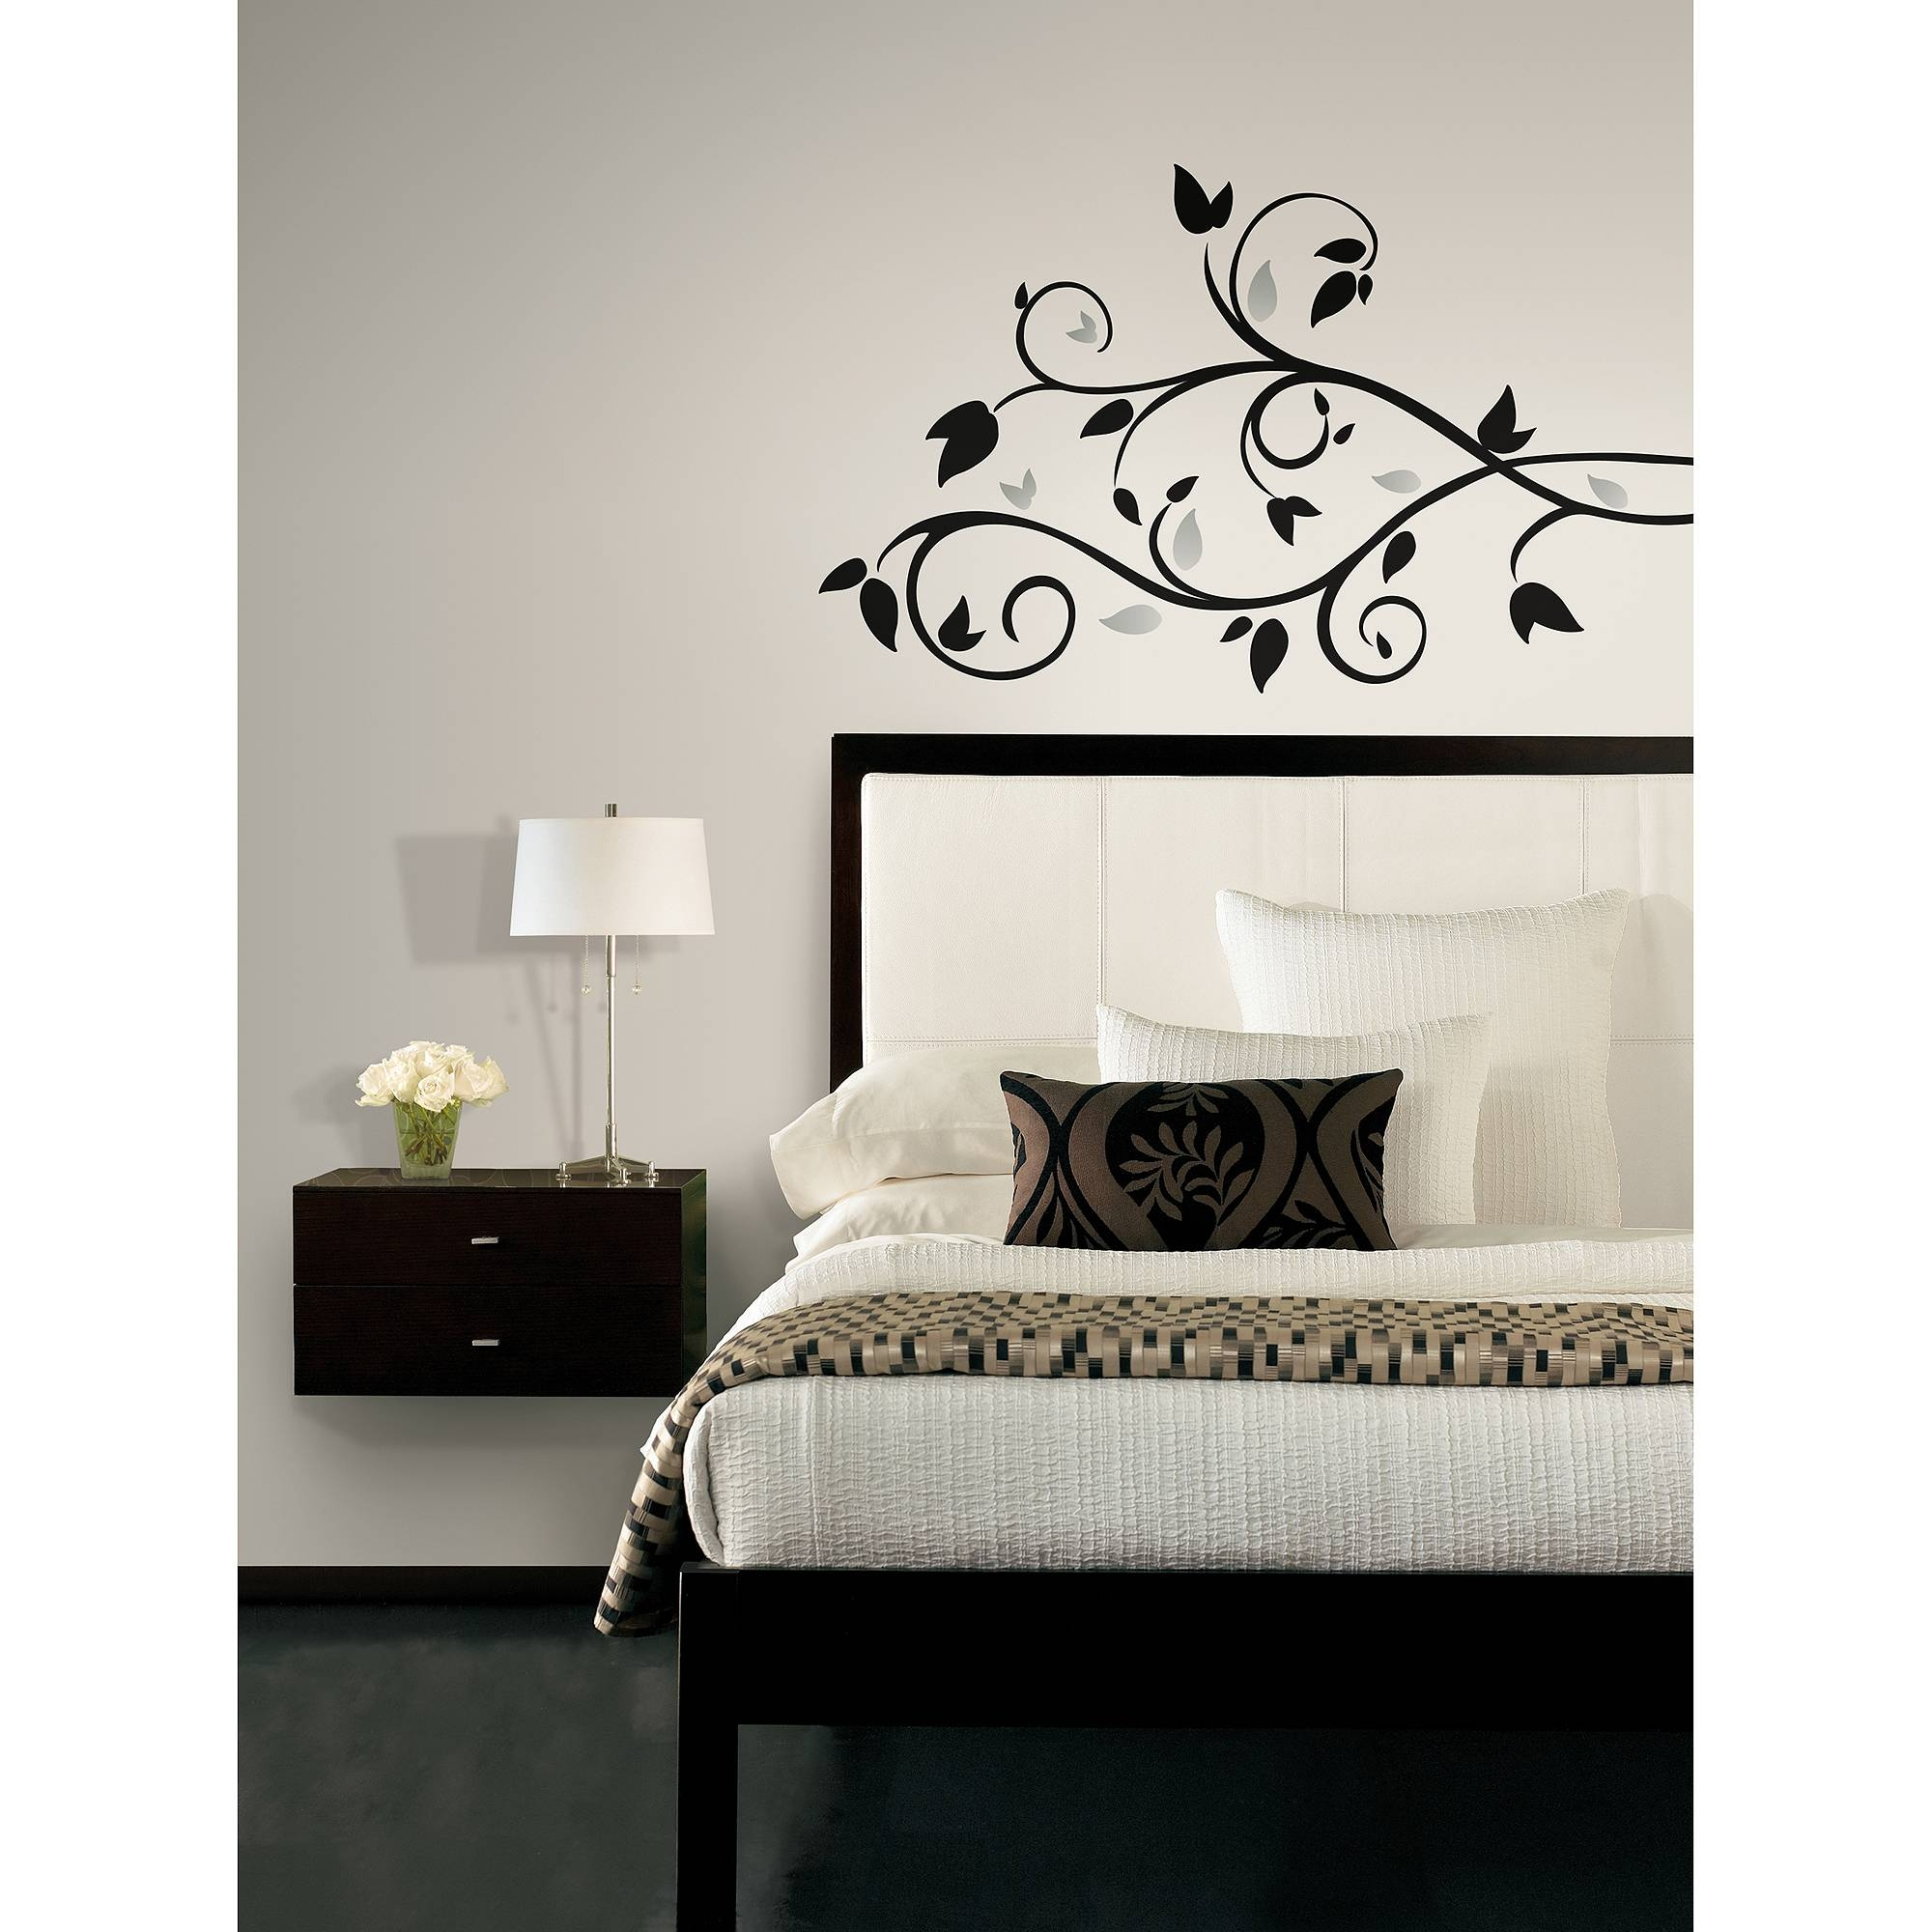 Roommates Foil Tree Branch Peel And Stick Wall Decal – Walmart Throughout Latest Walmart Wall Stickers (View 2 of 25)